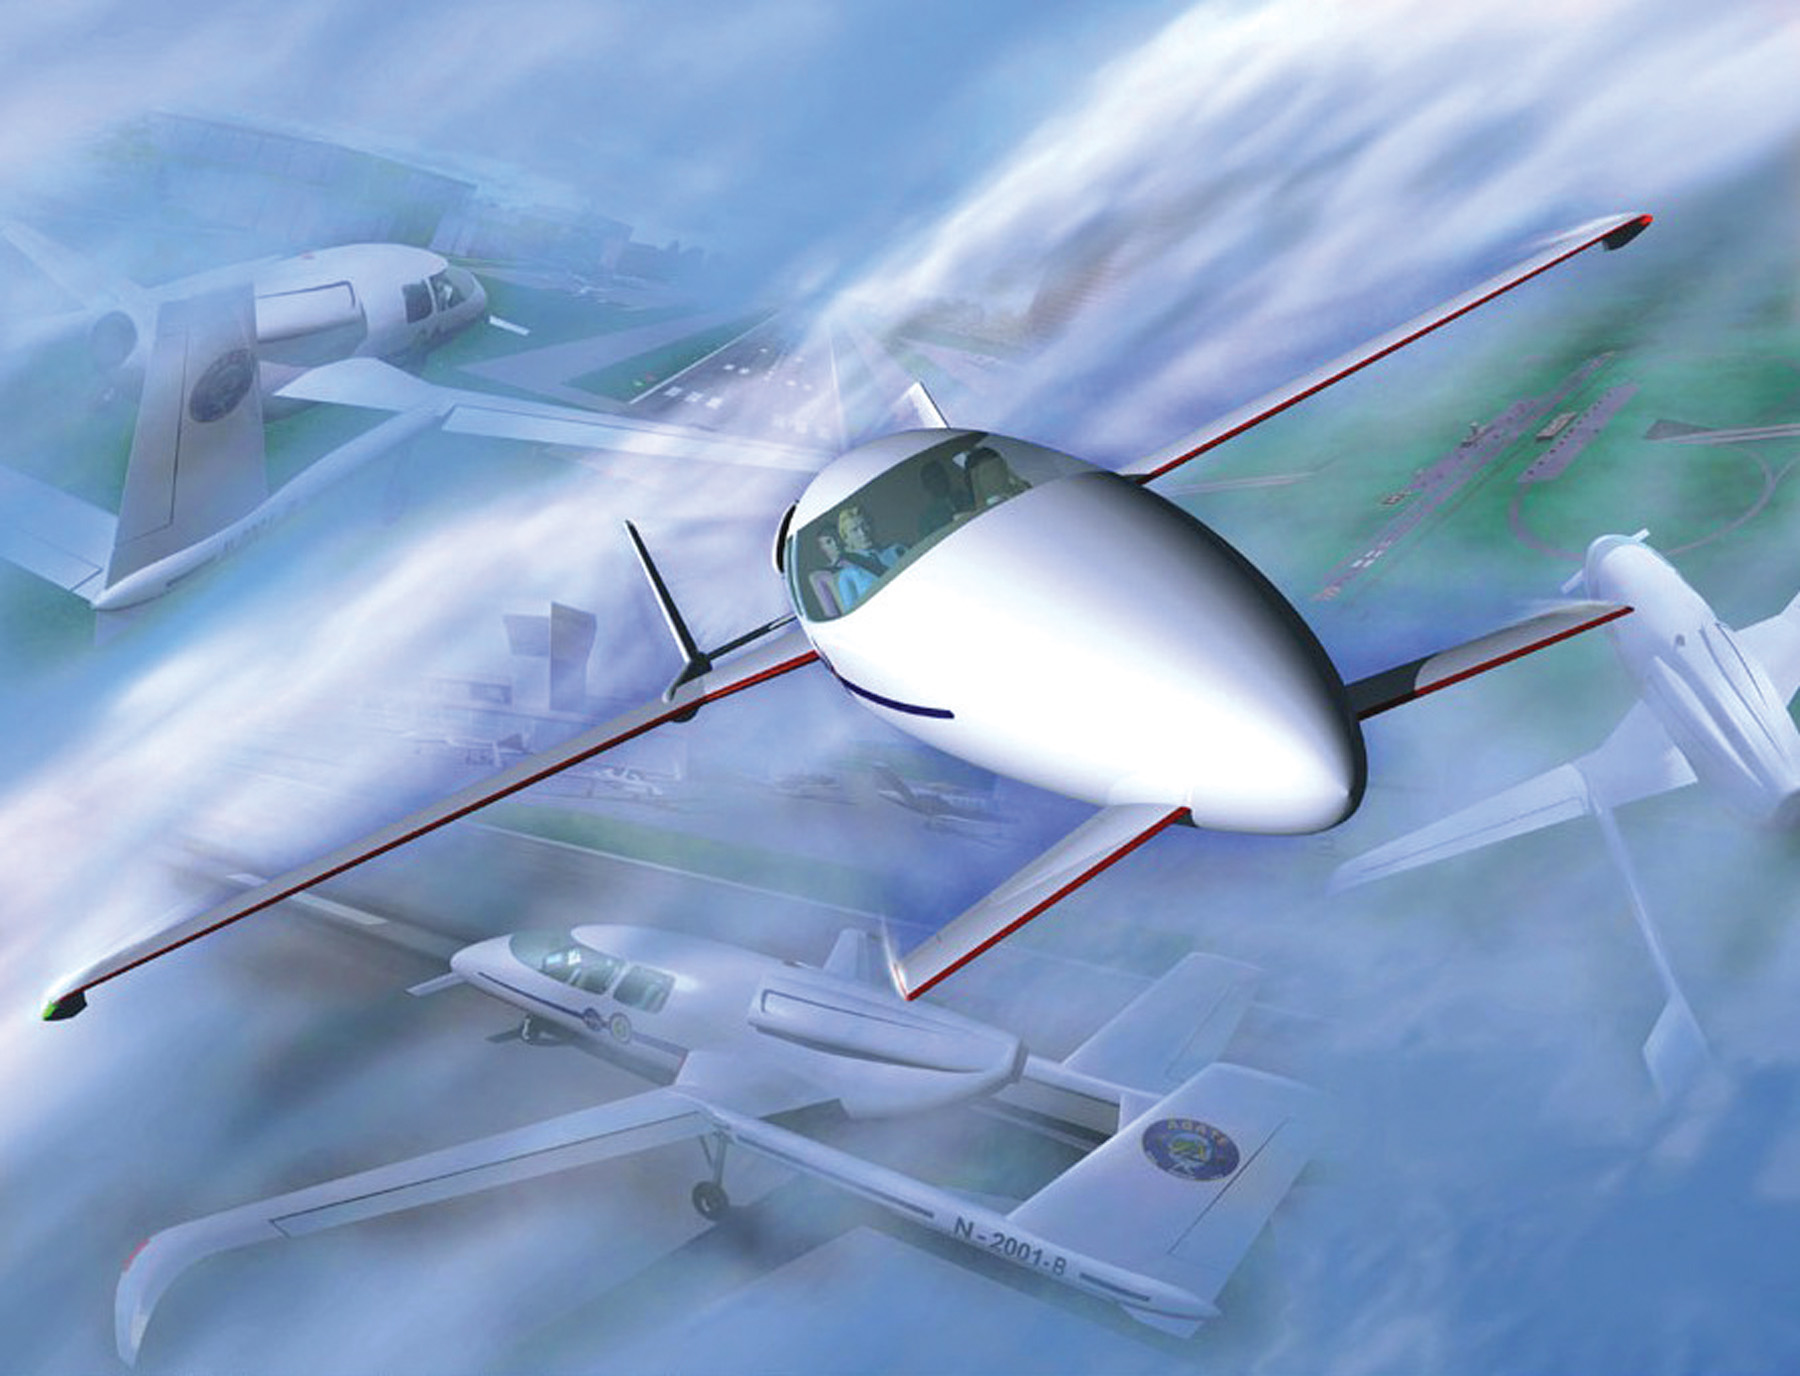 Small Aircraft Transportation System 2005 A Transformation of Air Travel